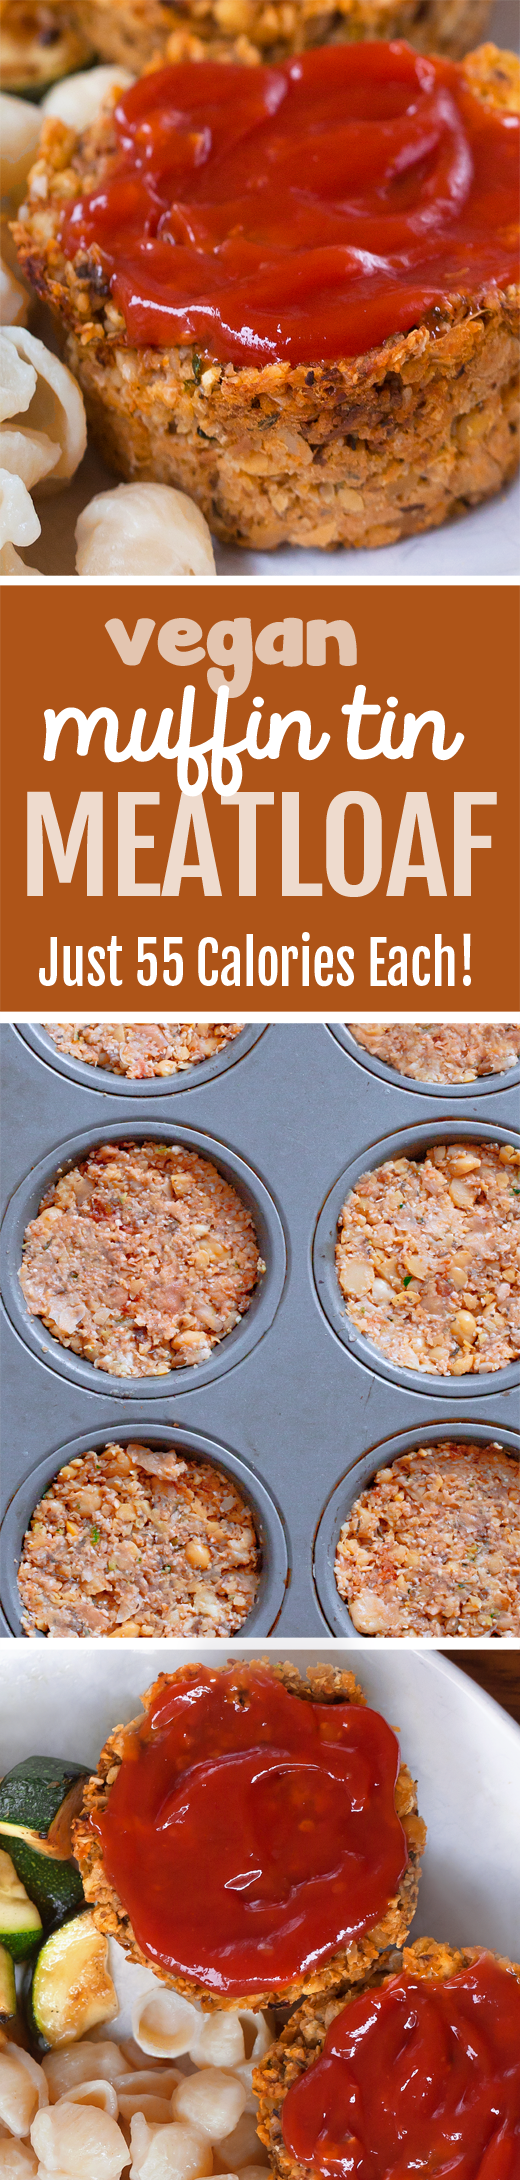 NO tofu or eggs in these portable vegan meatloaf cupcakes that are so easy to make!